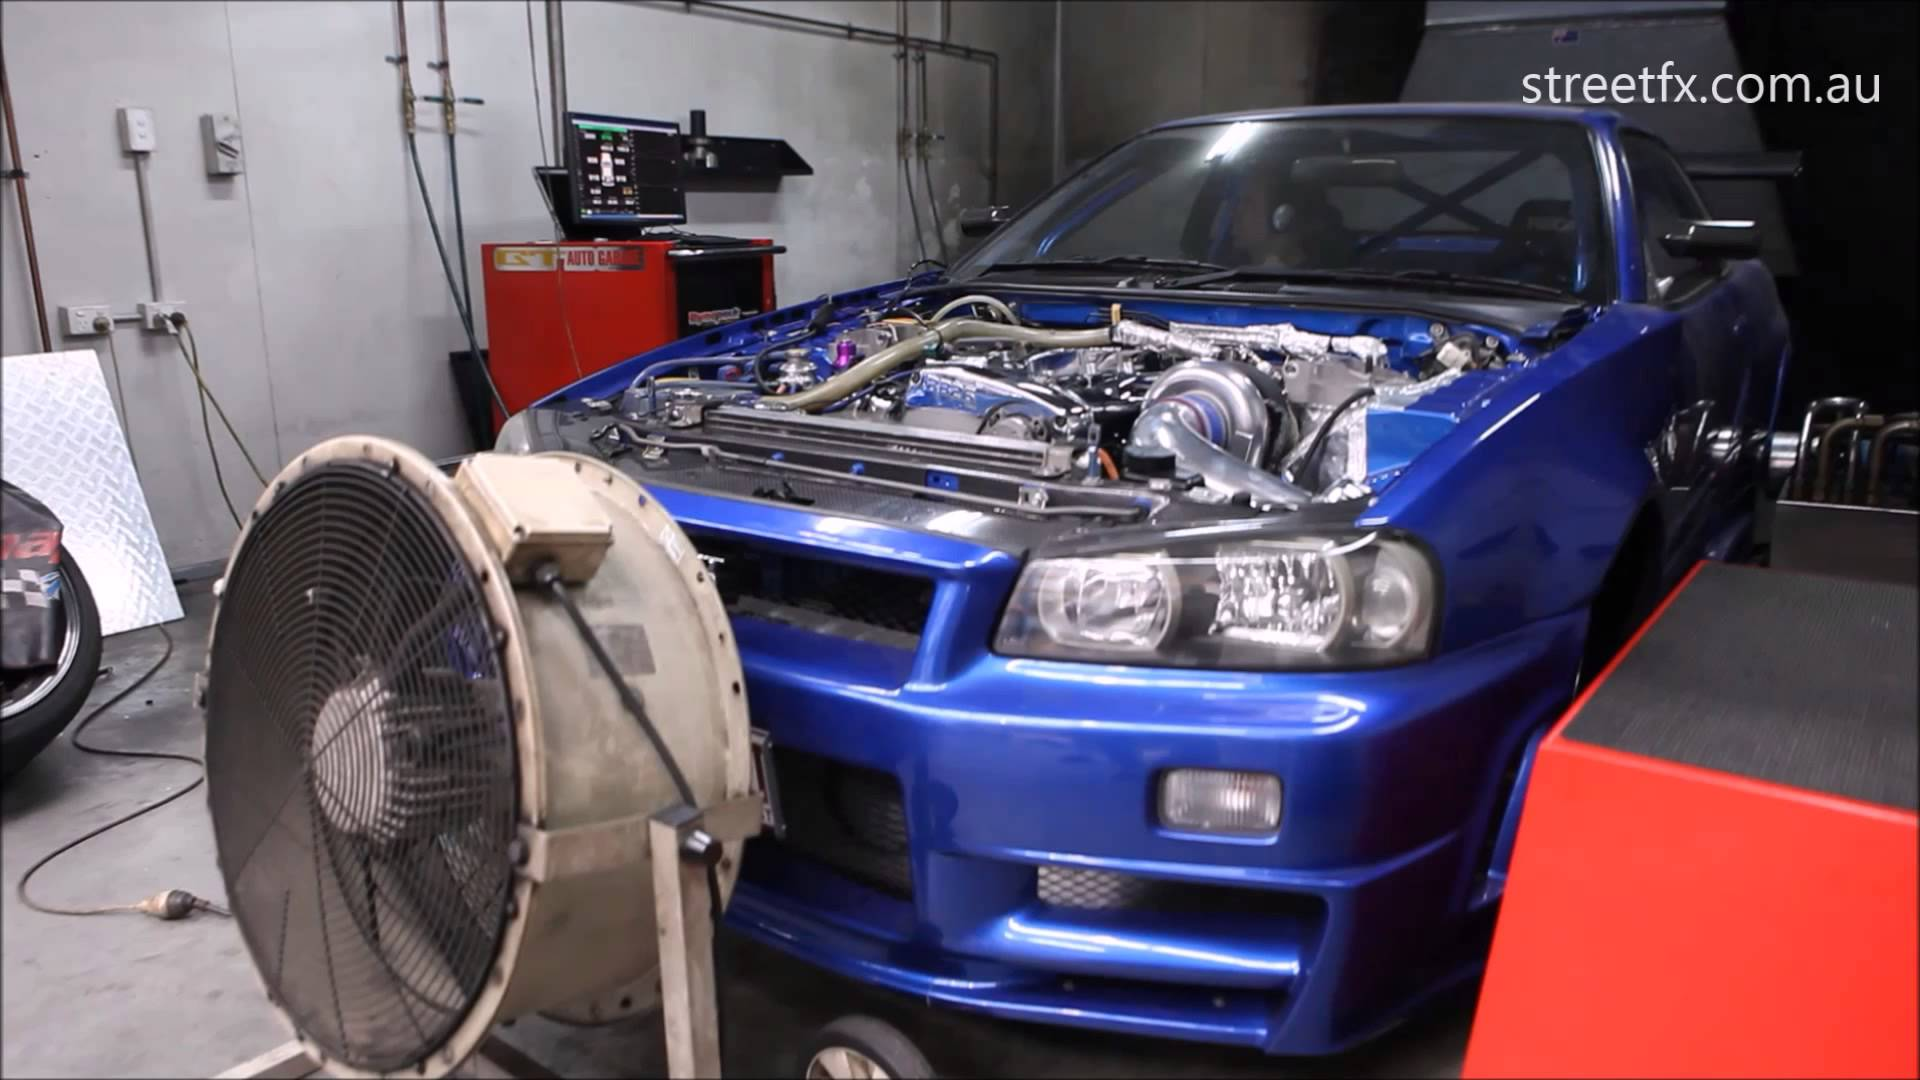 GT R Broke The Dyno Machine With The Engine Producing In Excess